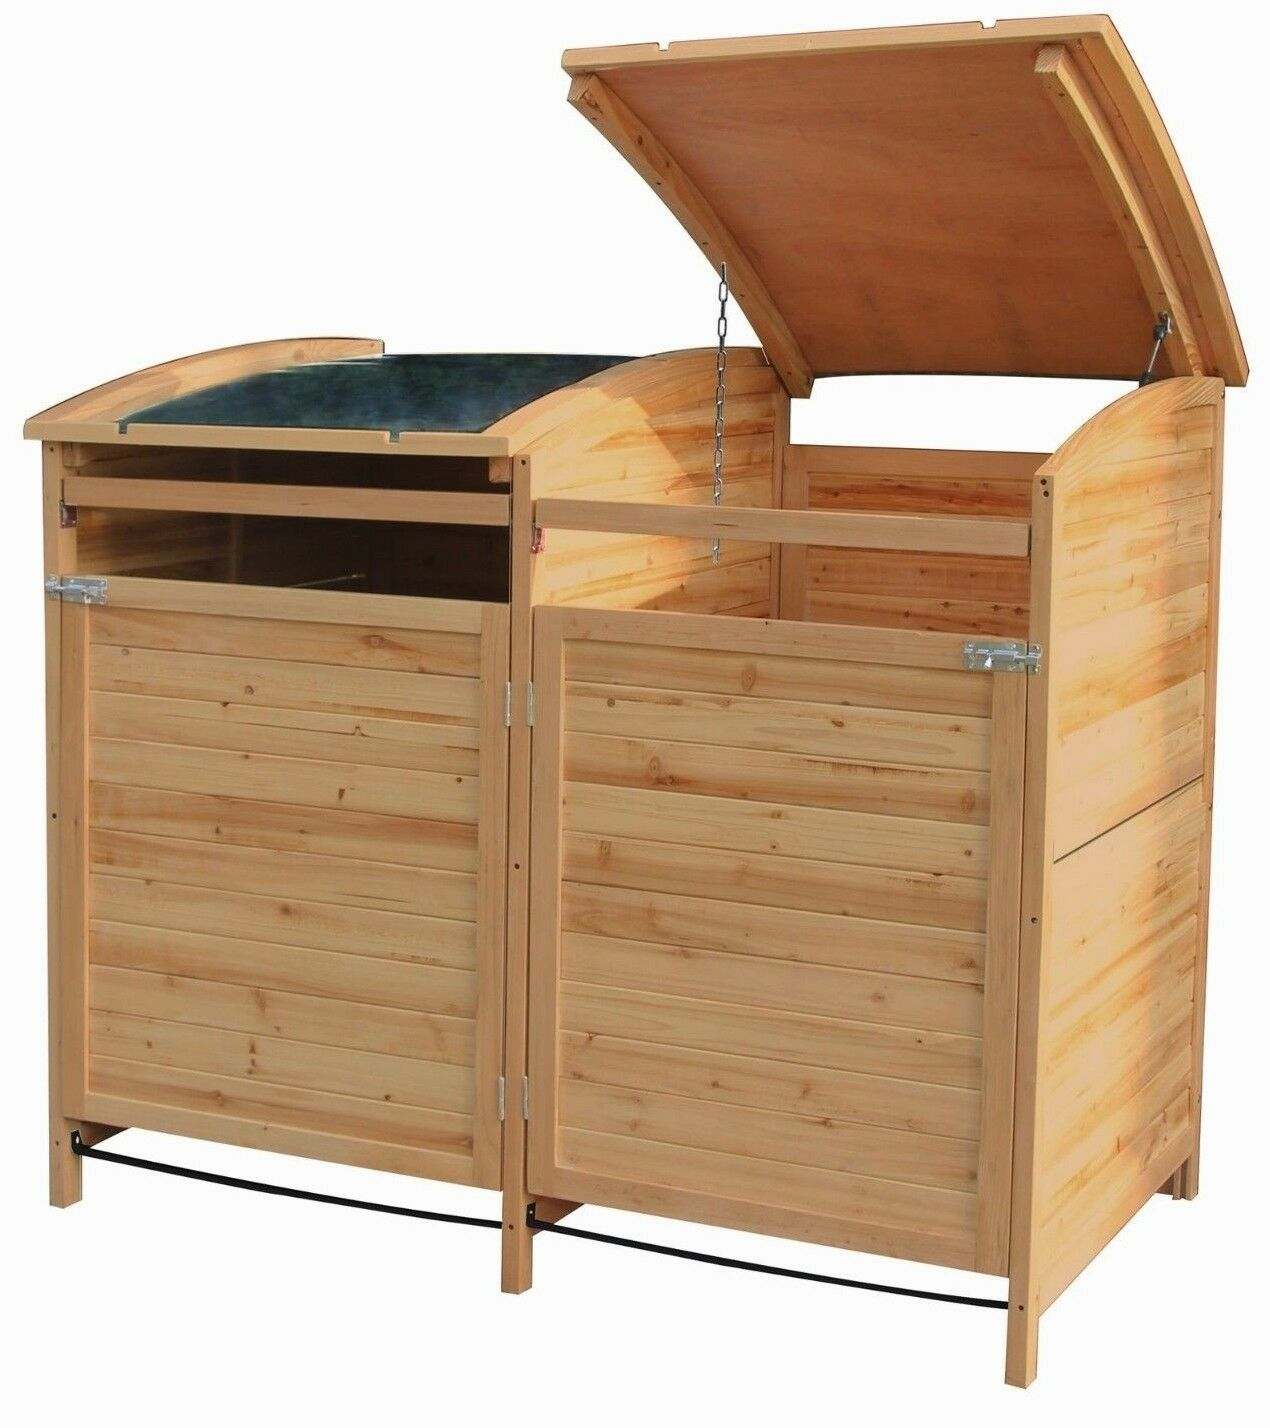 m lltonnenbox holz 240 l gartenbox m lltonnenverkleidung m lltonne 2er box neu eur 179 99. Black Bedroom Furniture Sets. Home Design Ideas